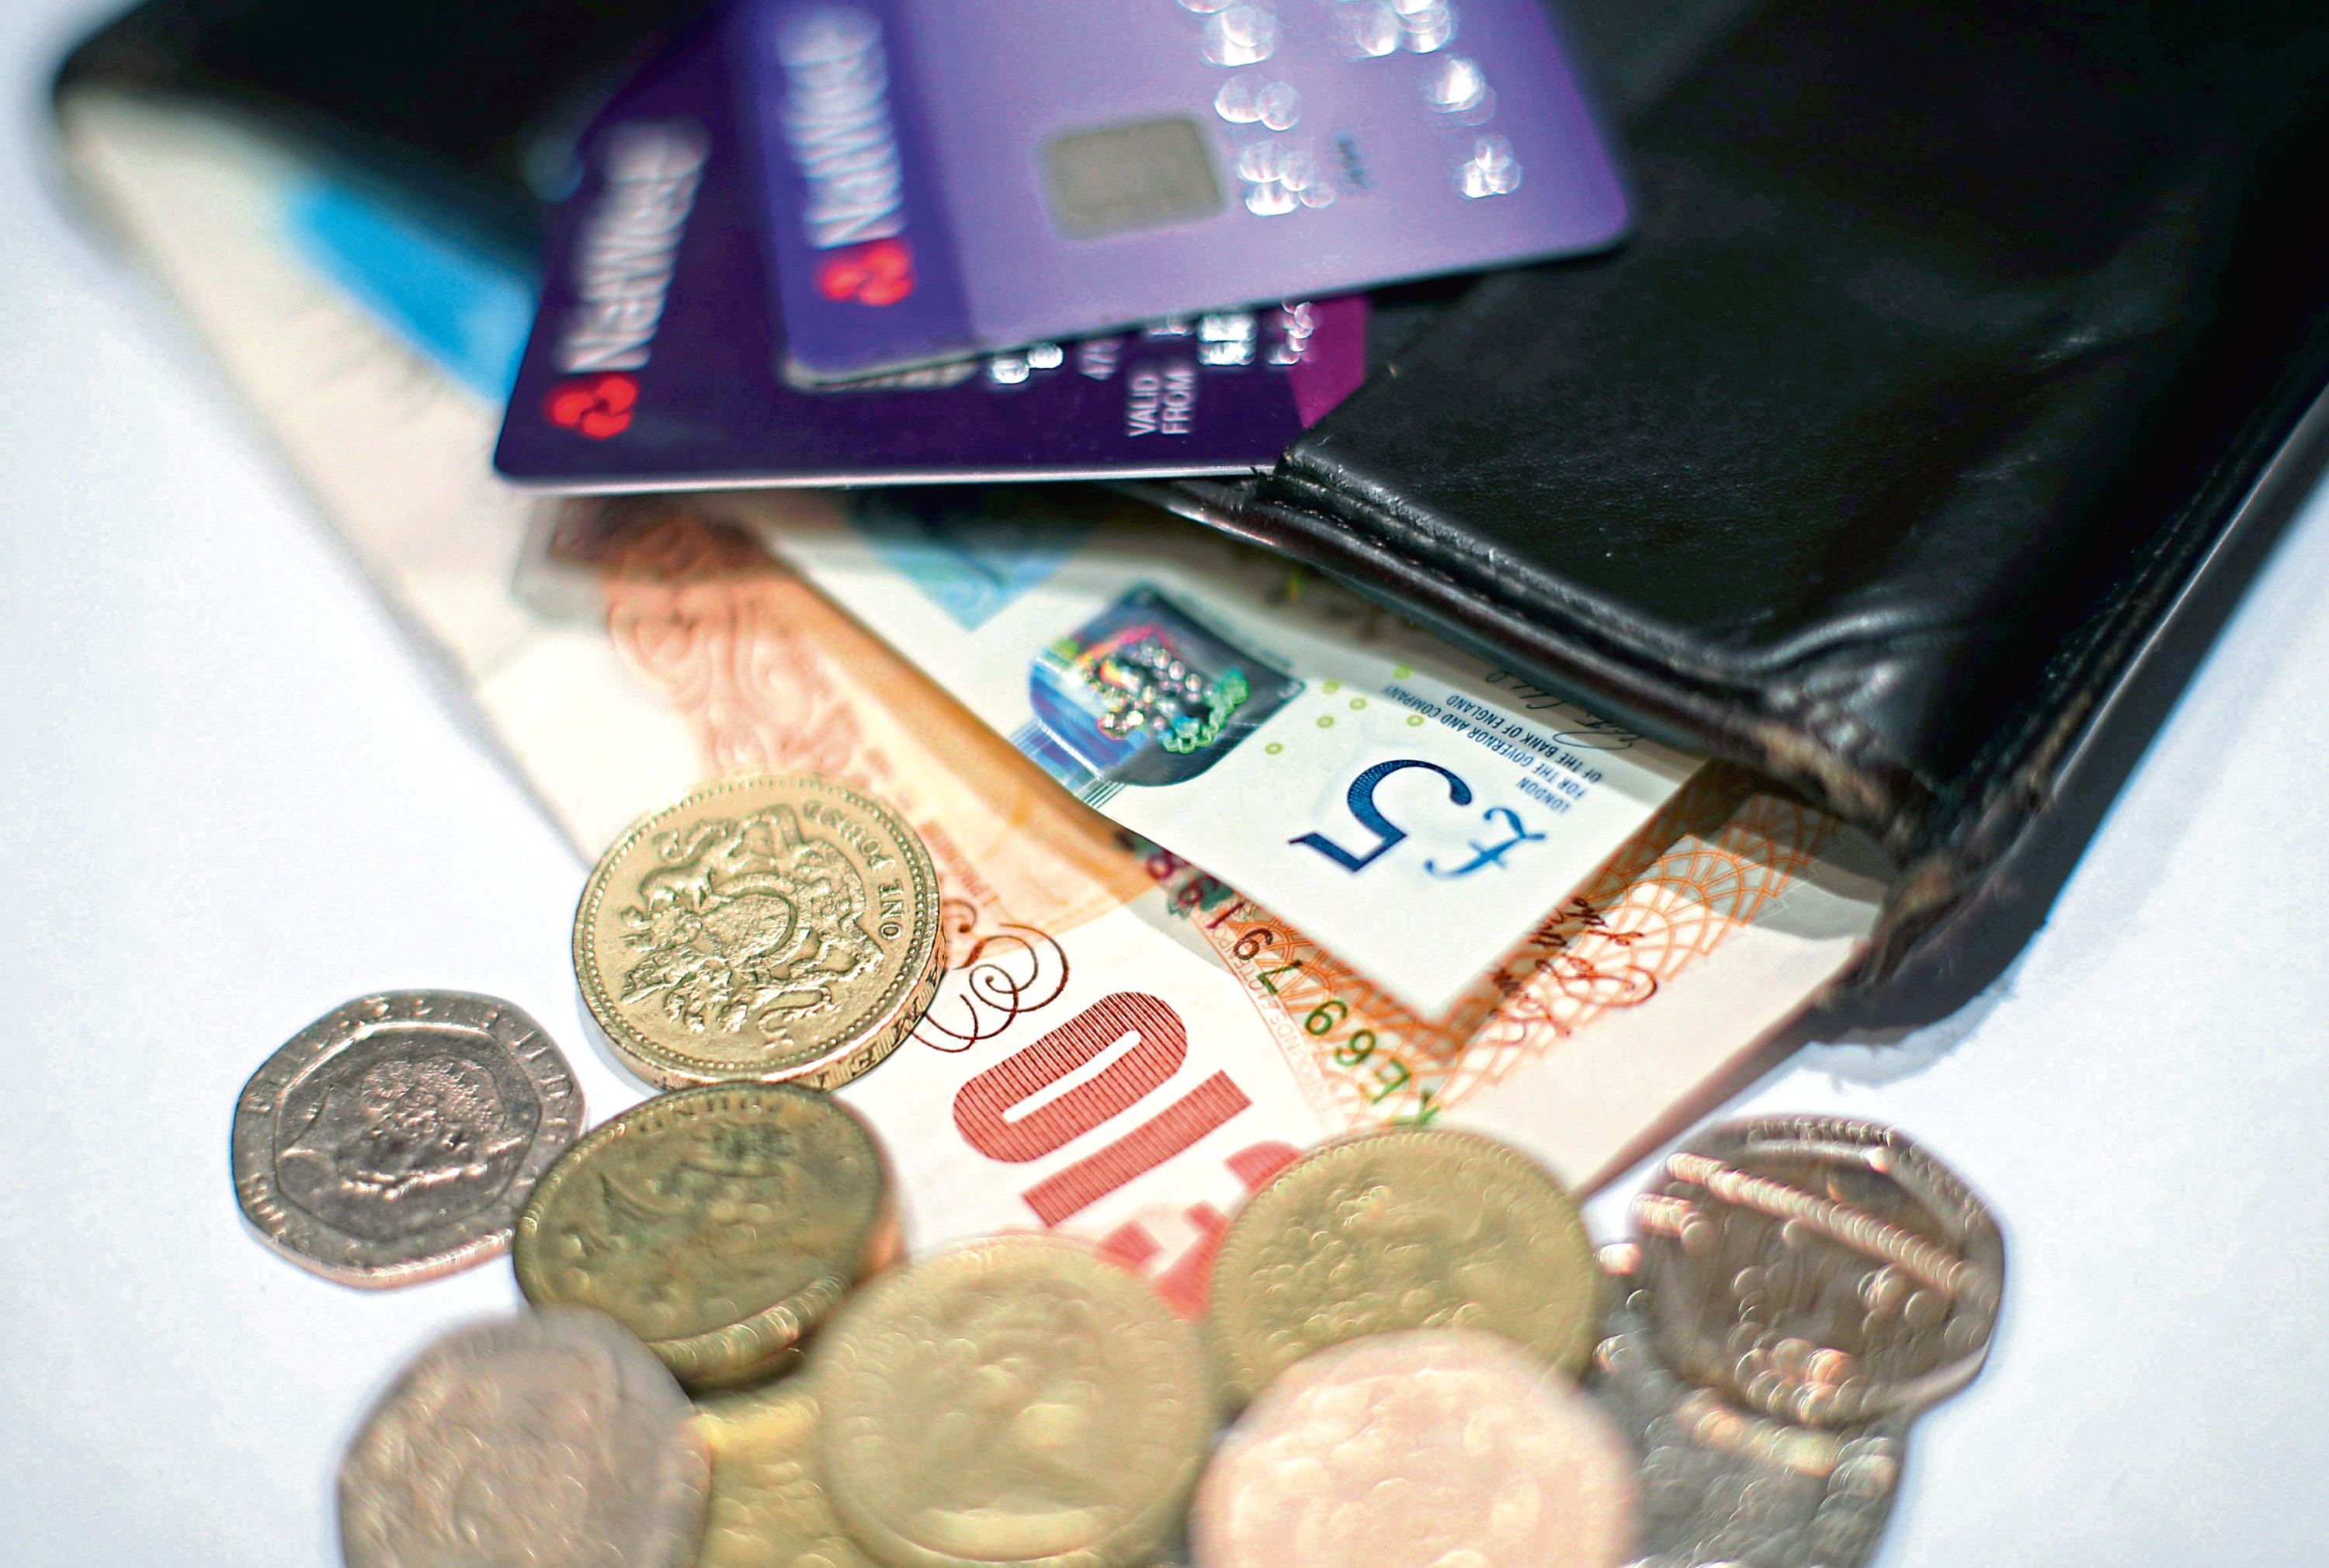 Coins and a five pound and ten pound banknotes and cards in a wallet.